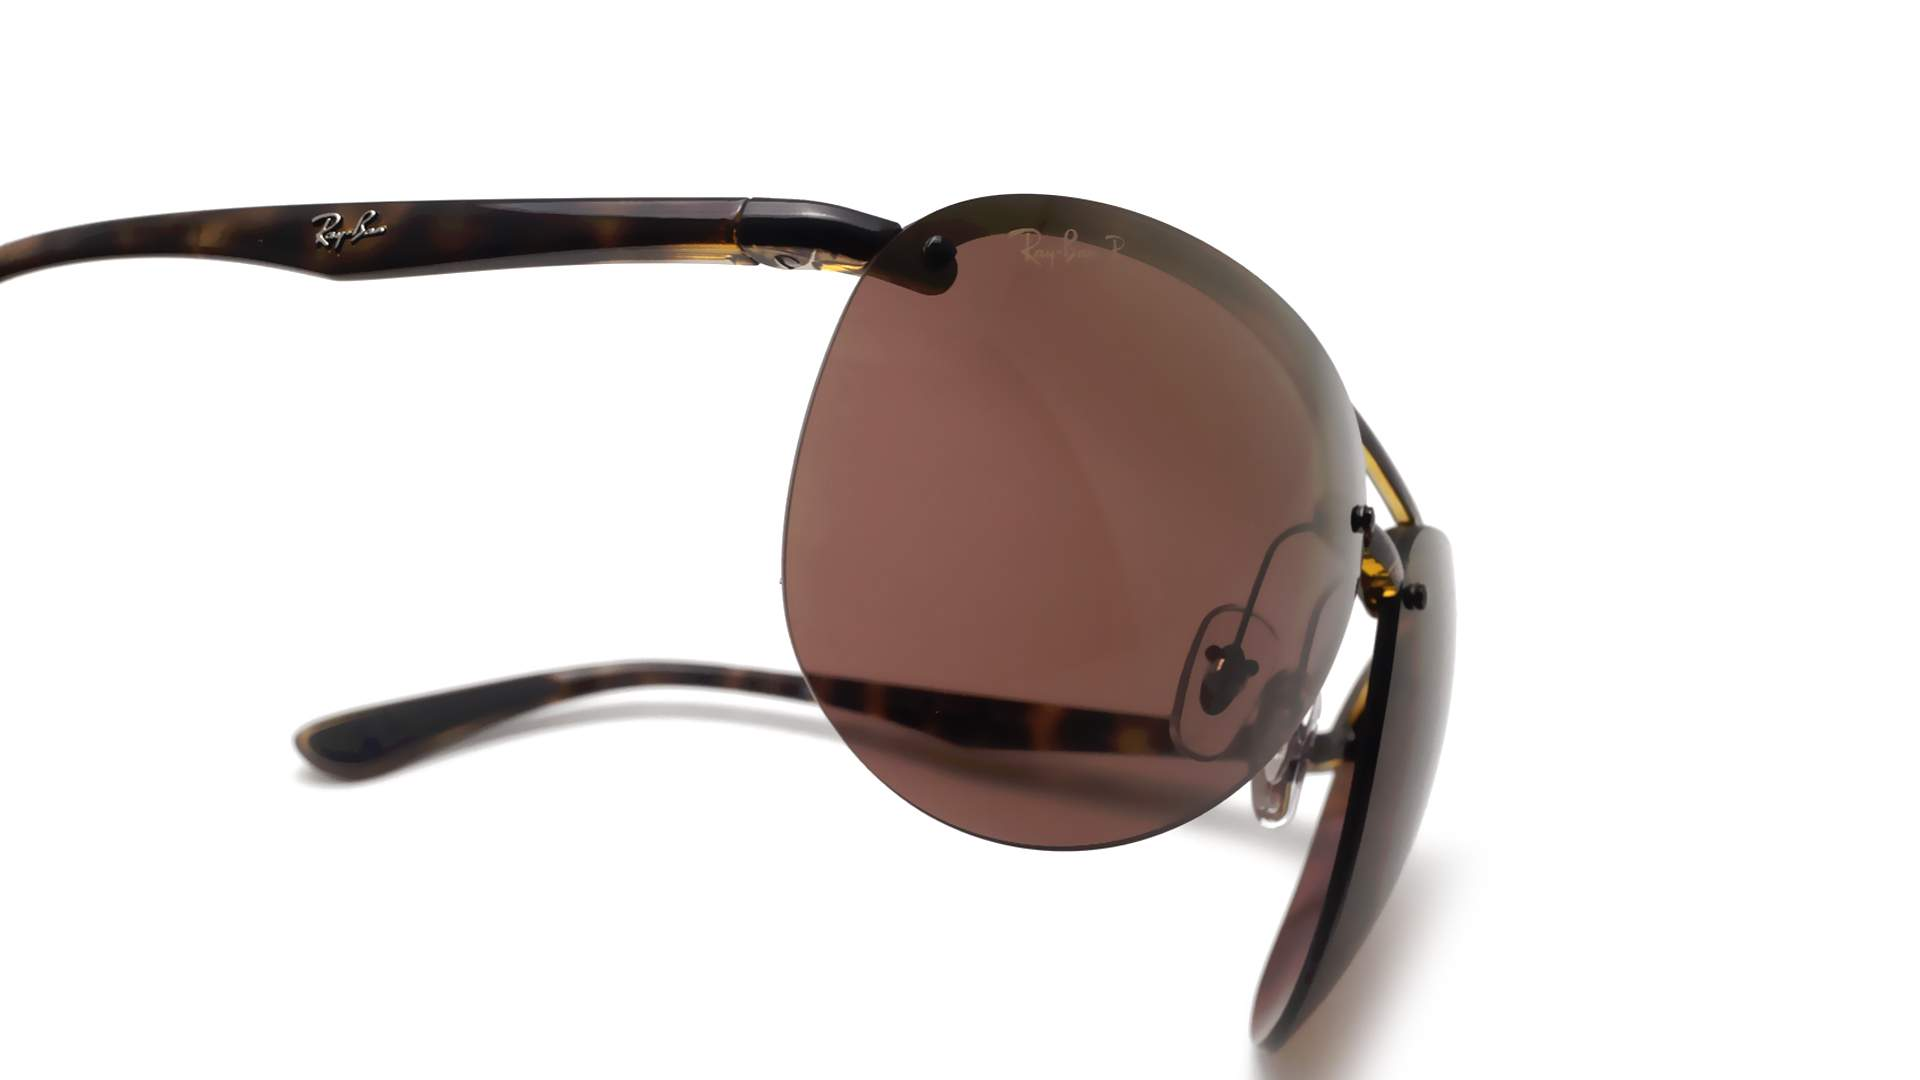 d282cace544 Sunglasses Ray-Ban RB4293CH 710 6B 65-13 Tortoise Chromance Large Polarized  Gradient Mirror